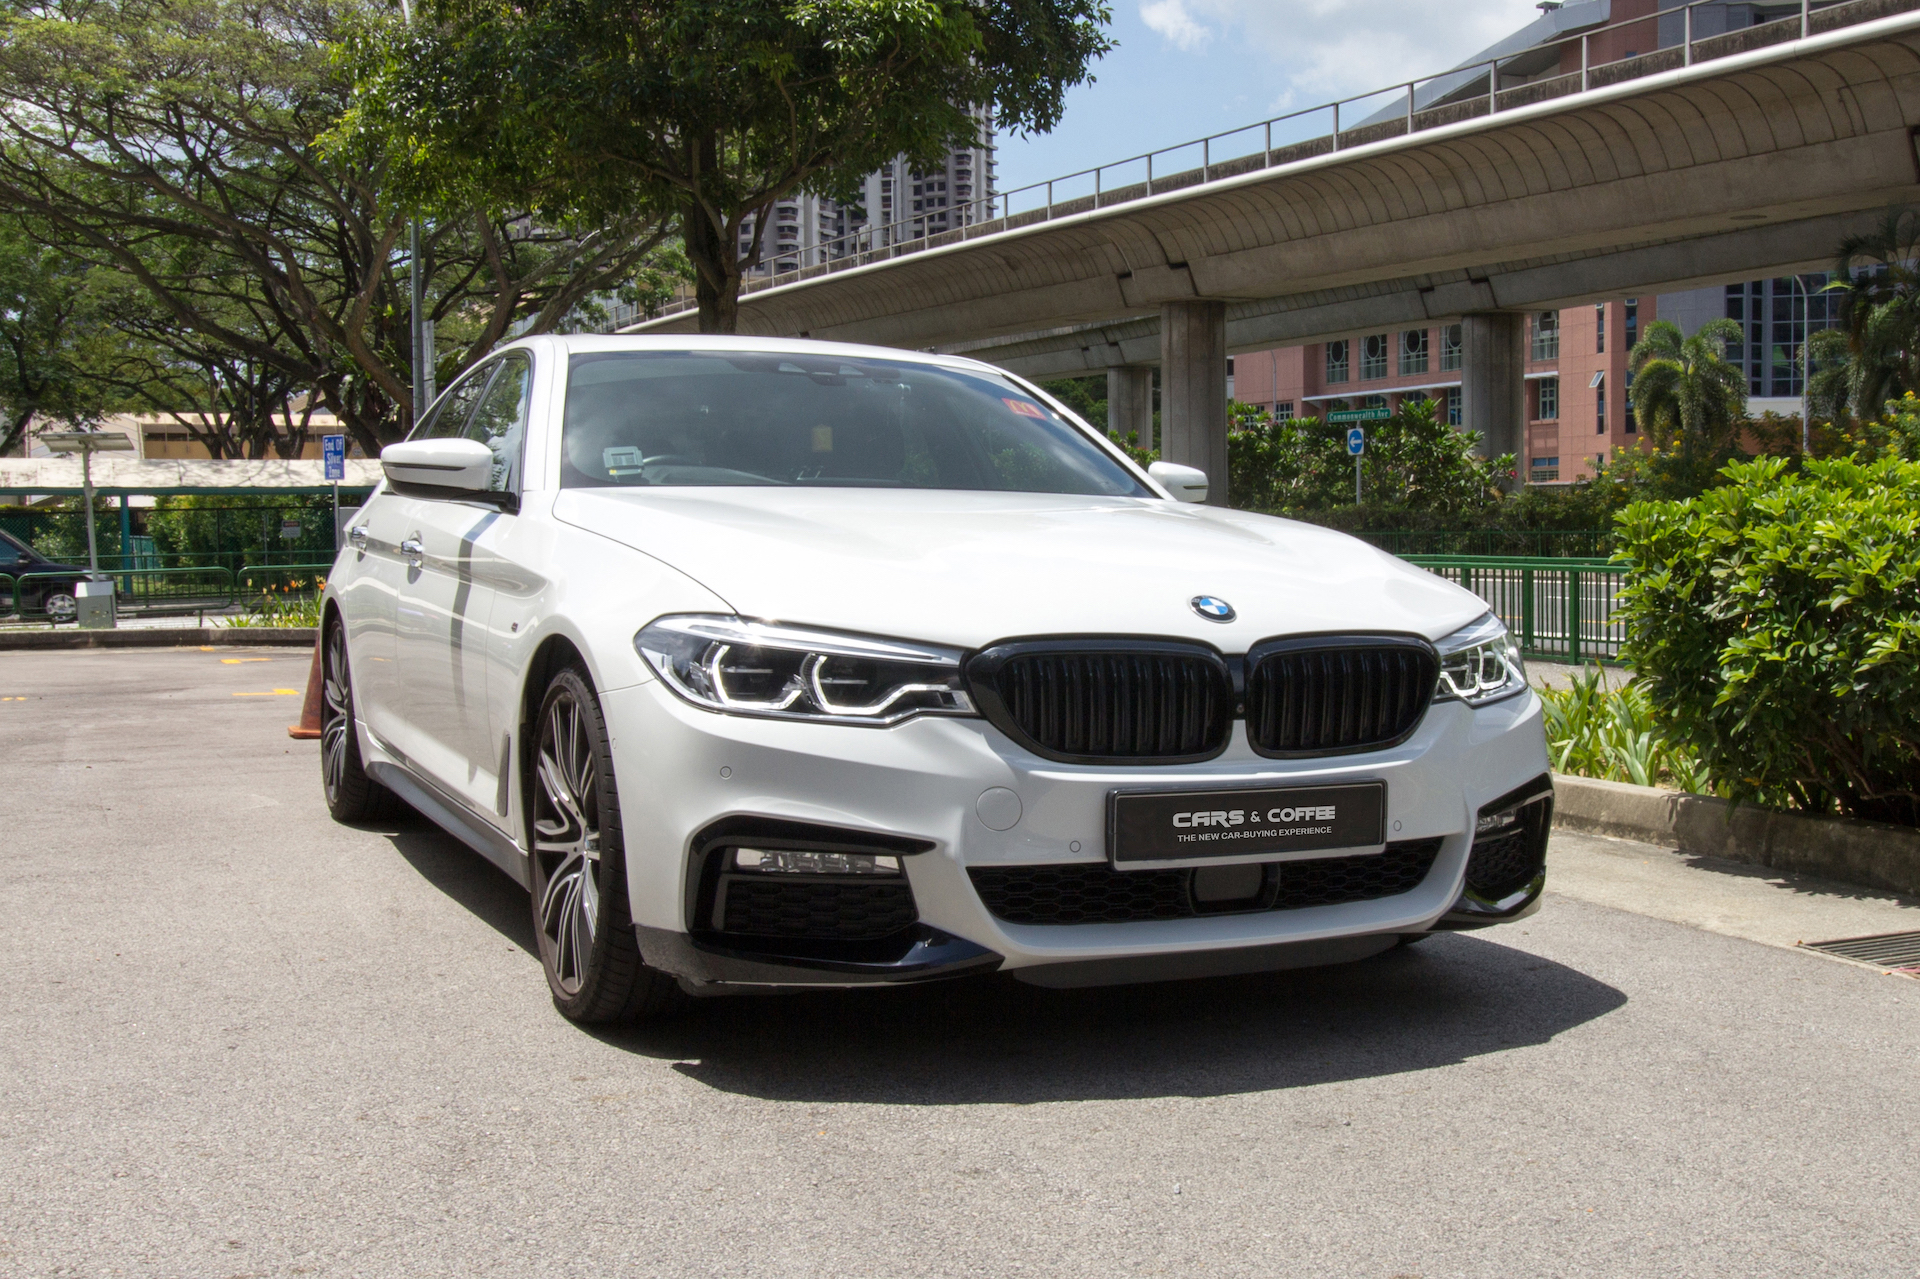 Certified Pre-Owned BMW 540i xDrive M-Sport   Cars and Coffee Singapore